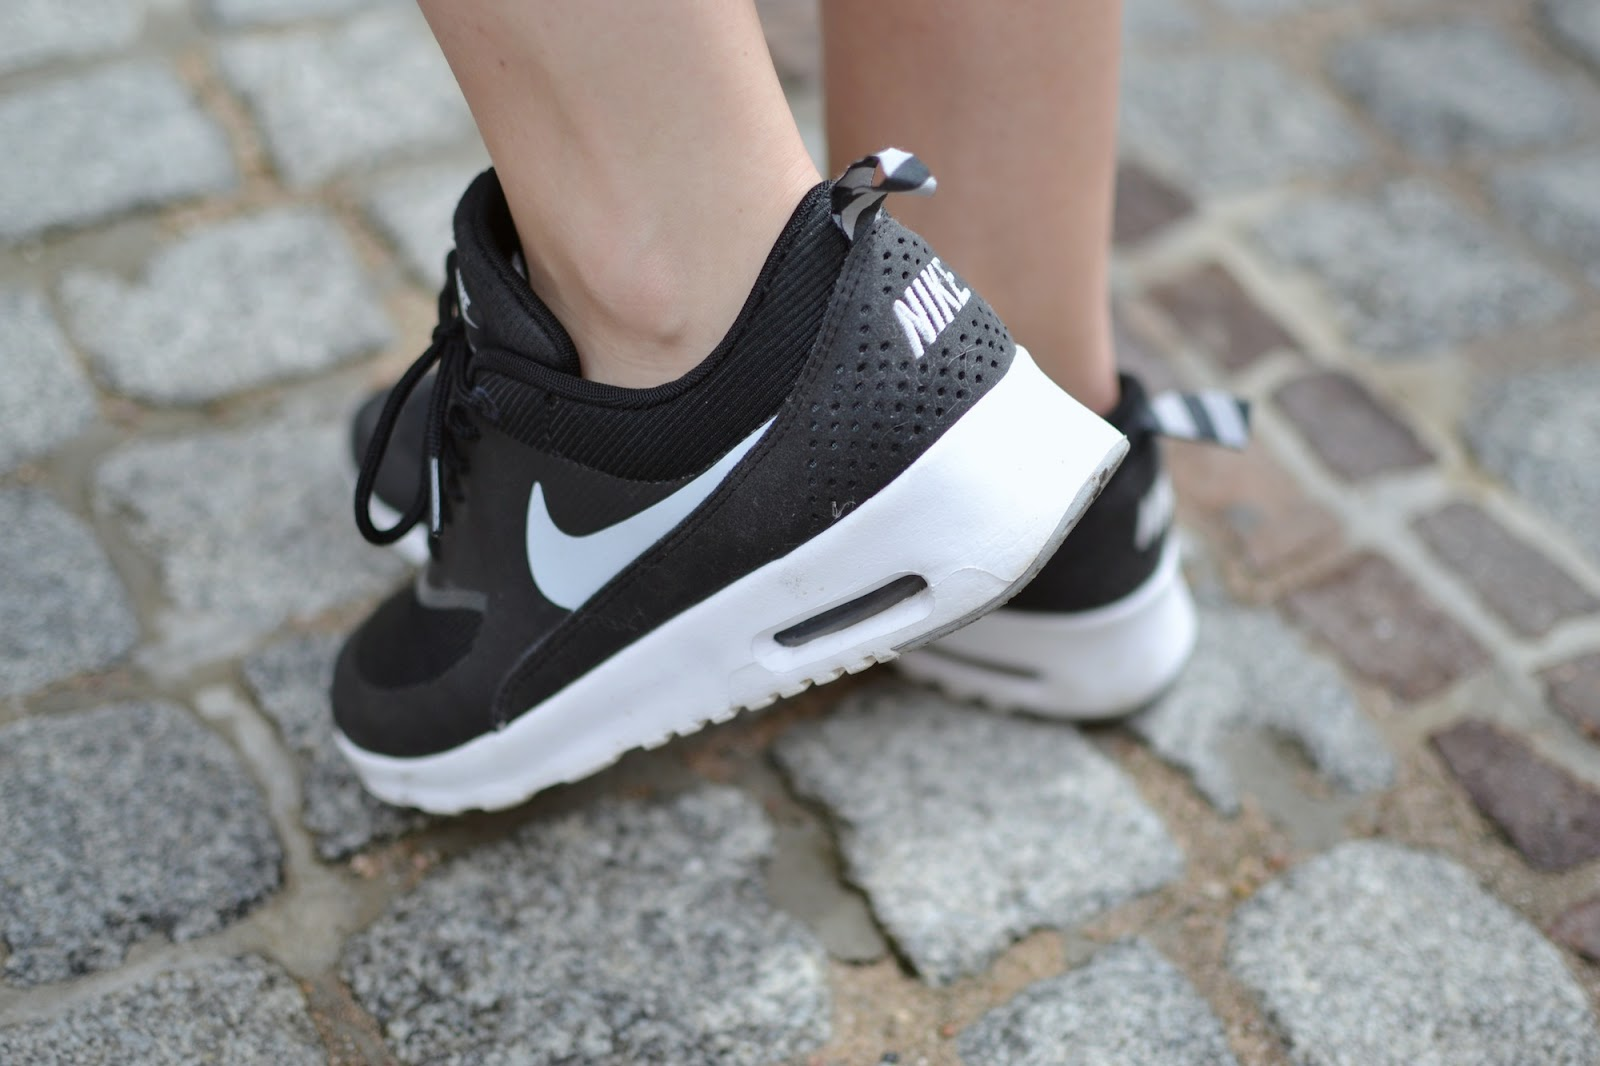 Nike Air Max Thea Black